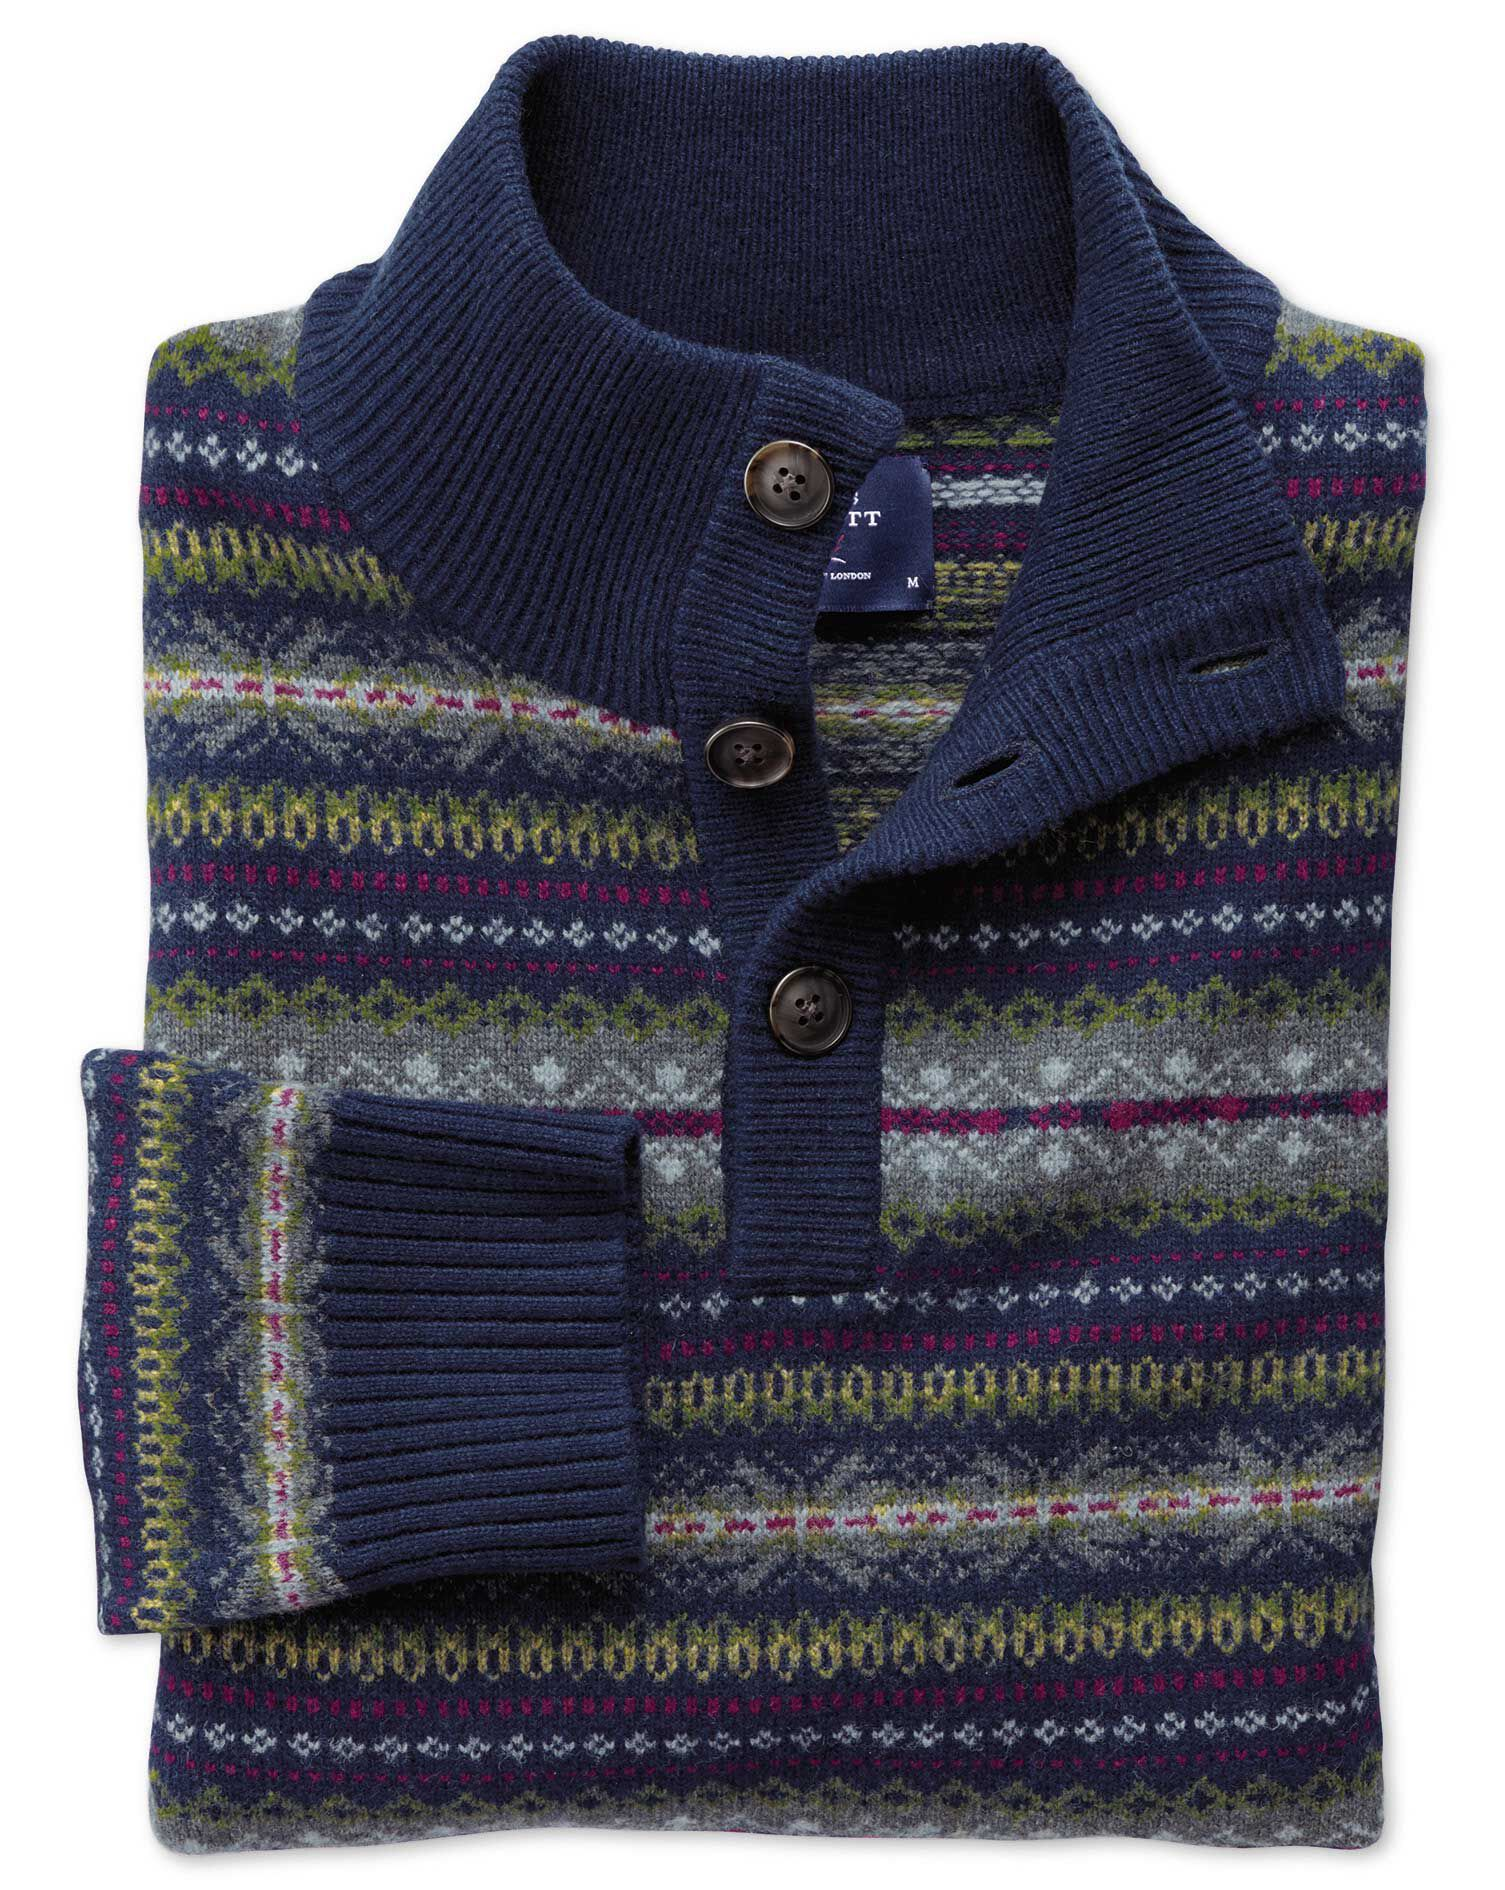 Navy Multi Fairisle Button Neck Wool Jumper Size XXXL by Charles Tyrwhitt